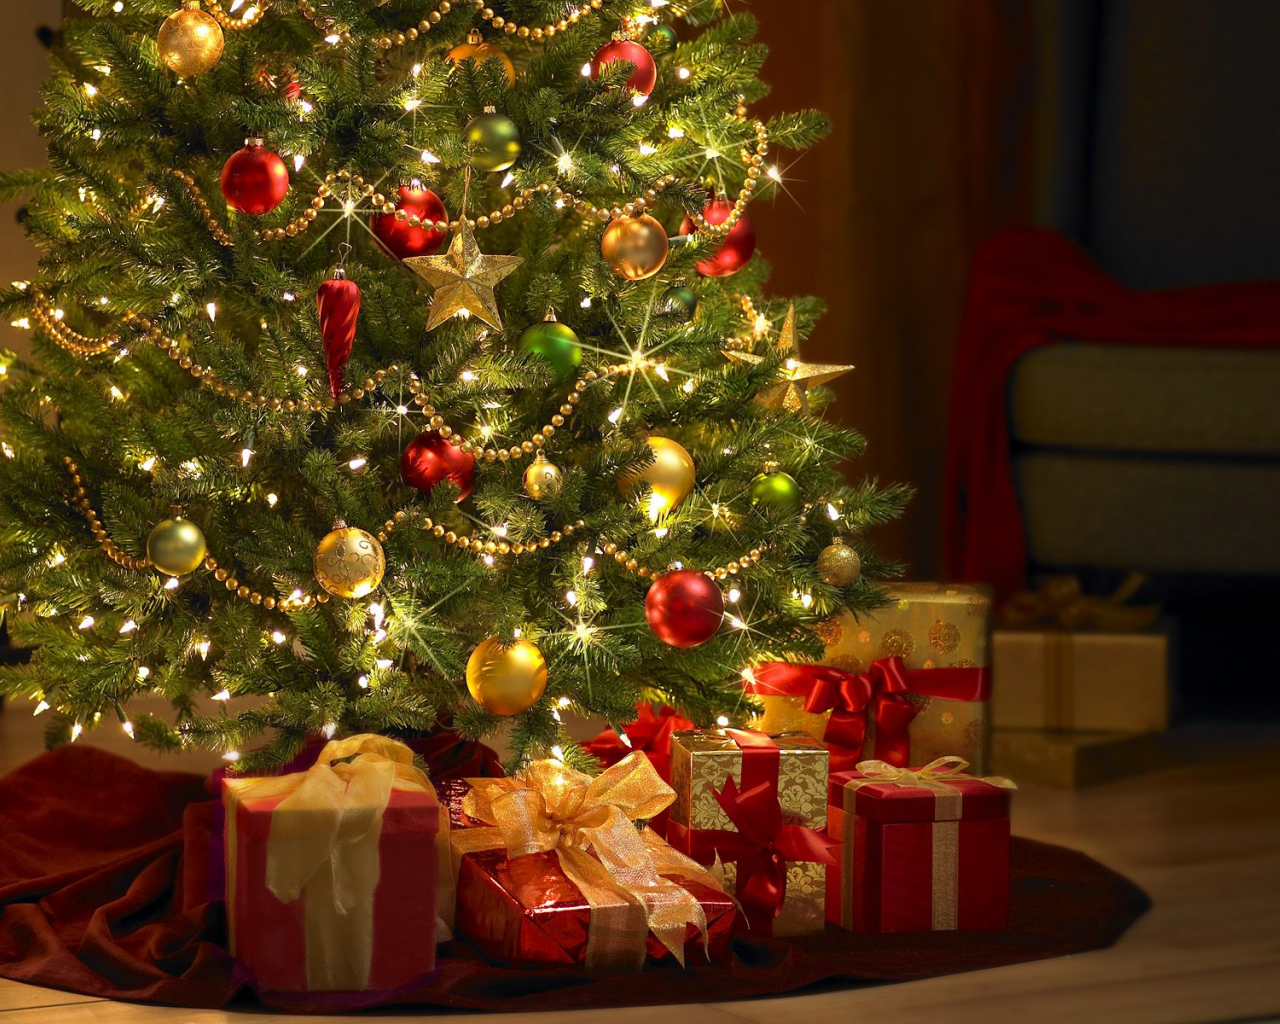 Free Download High Definition Pictures Hd Christmas Wallpapers Desktop Backgrounds 1600x1200 For Your Desktop Mobile Tablet Explore 46 Christmas Tree Wallpapers Hd Tree Background Wallpaper Beautiful Hd Christmas Wallpaper Wallpaper Tree